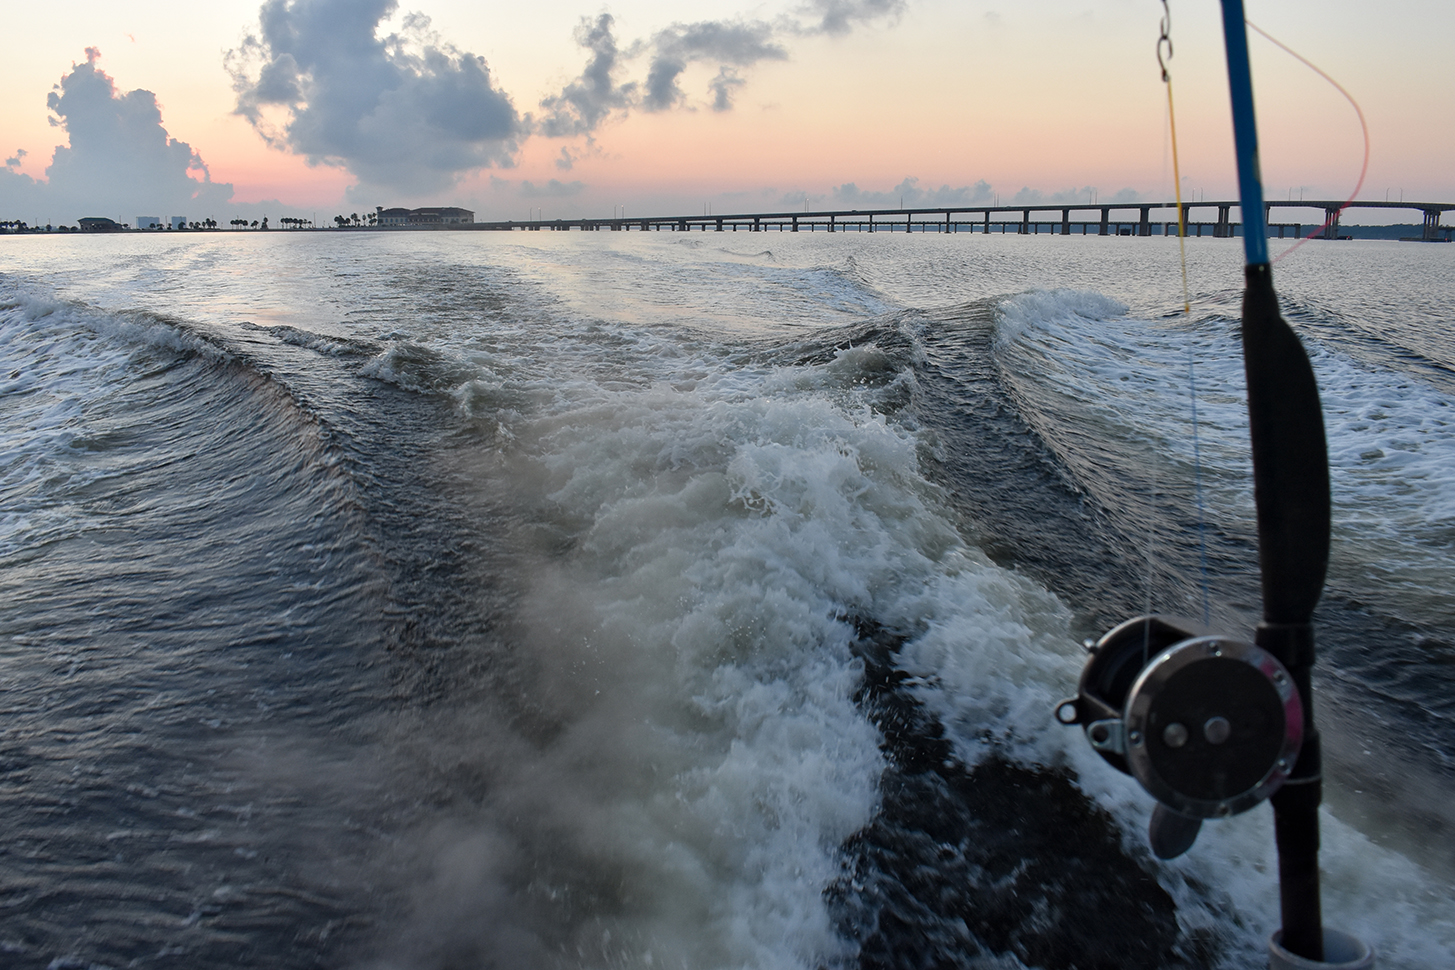 Bridge and coast can be seen from a boat. A fishing reel and pole is in the foreground, in front of the boat's wake. Image: Florida Fish and Wildlife